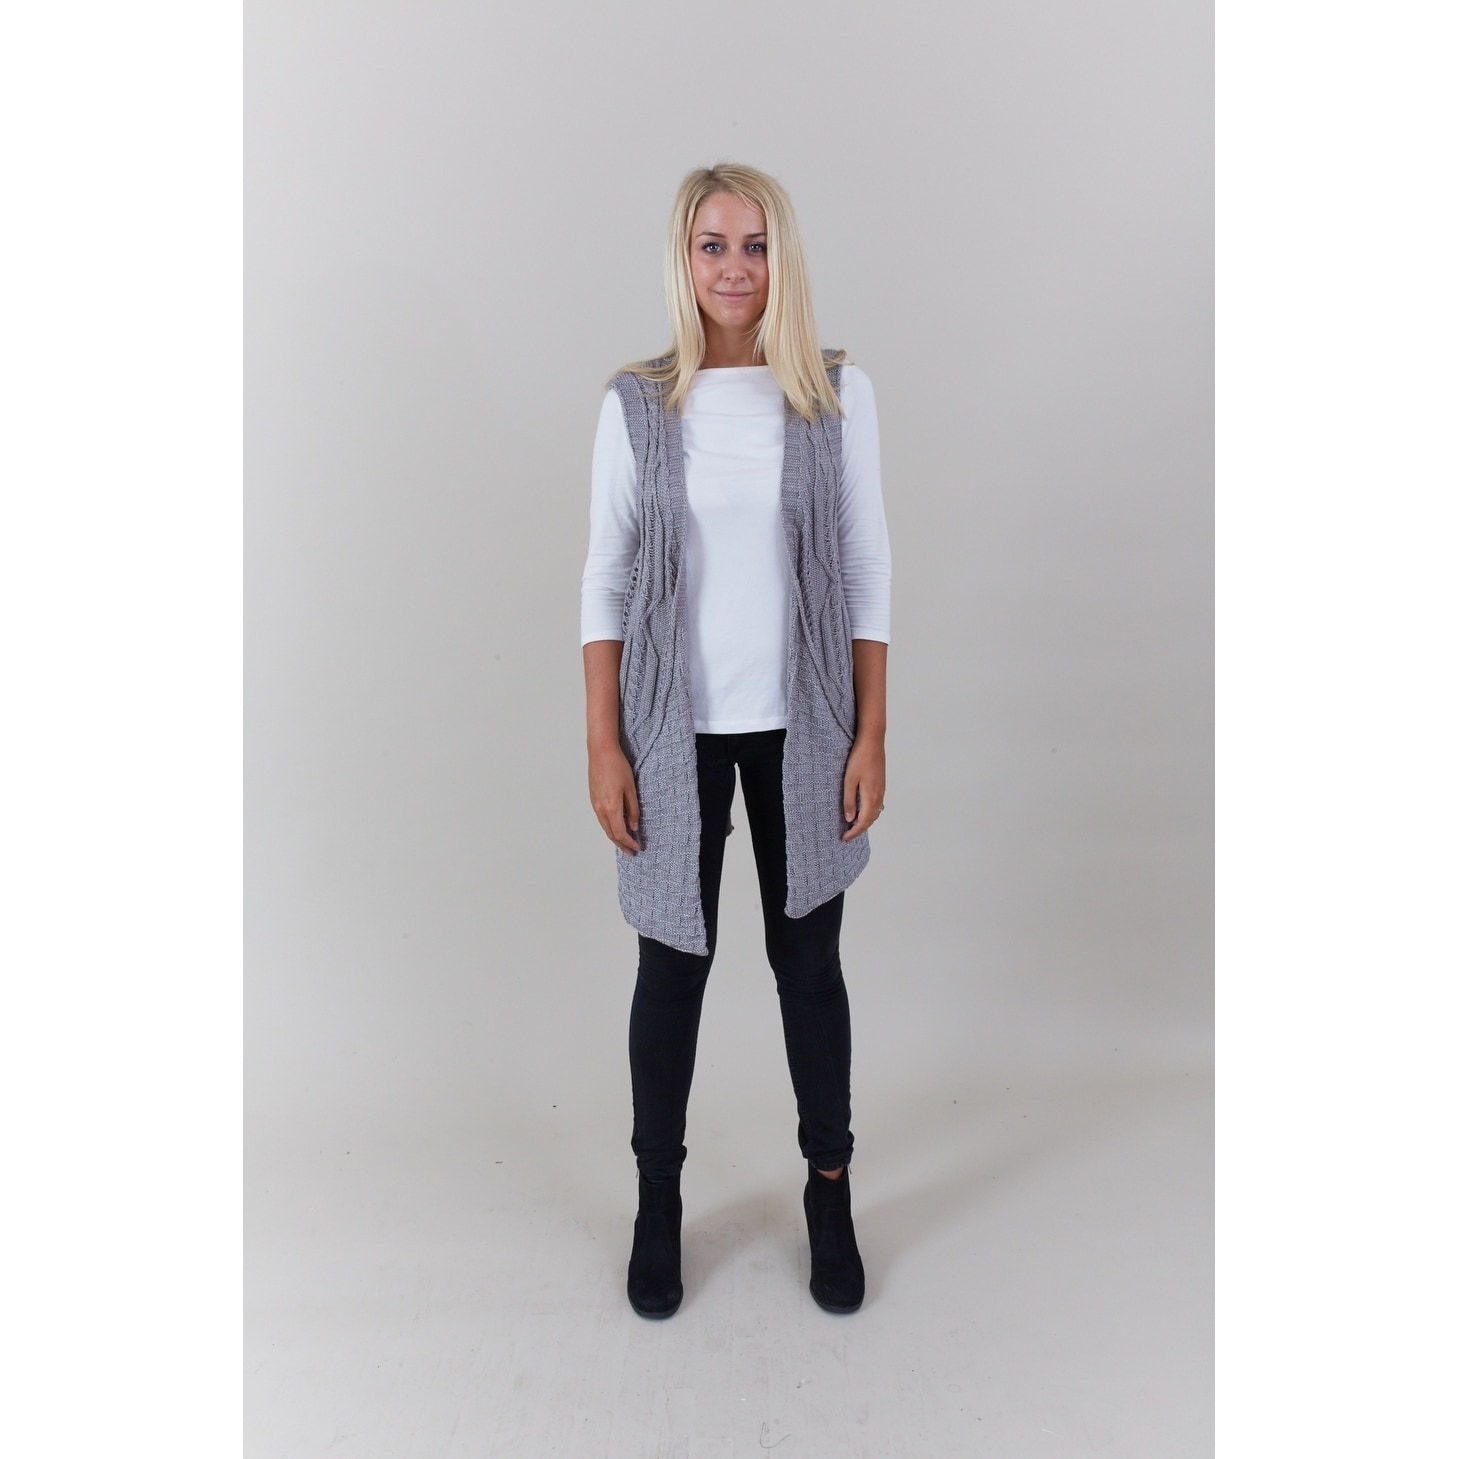 79a8615a171d Shop Le Nom Big Pockets Cable Knit Vest - On Sale - Free Shipping On Orders  Over  45 - Overstock.com - 18161560